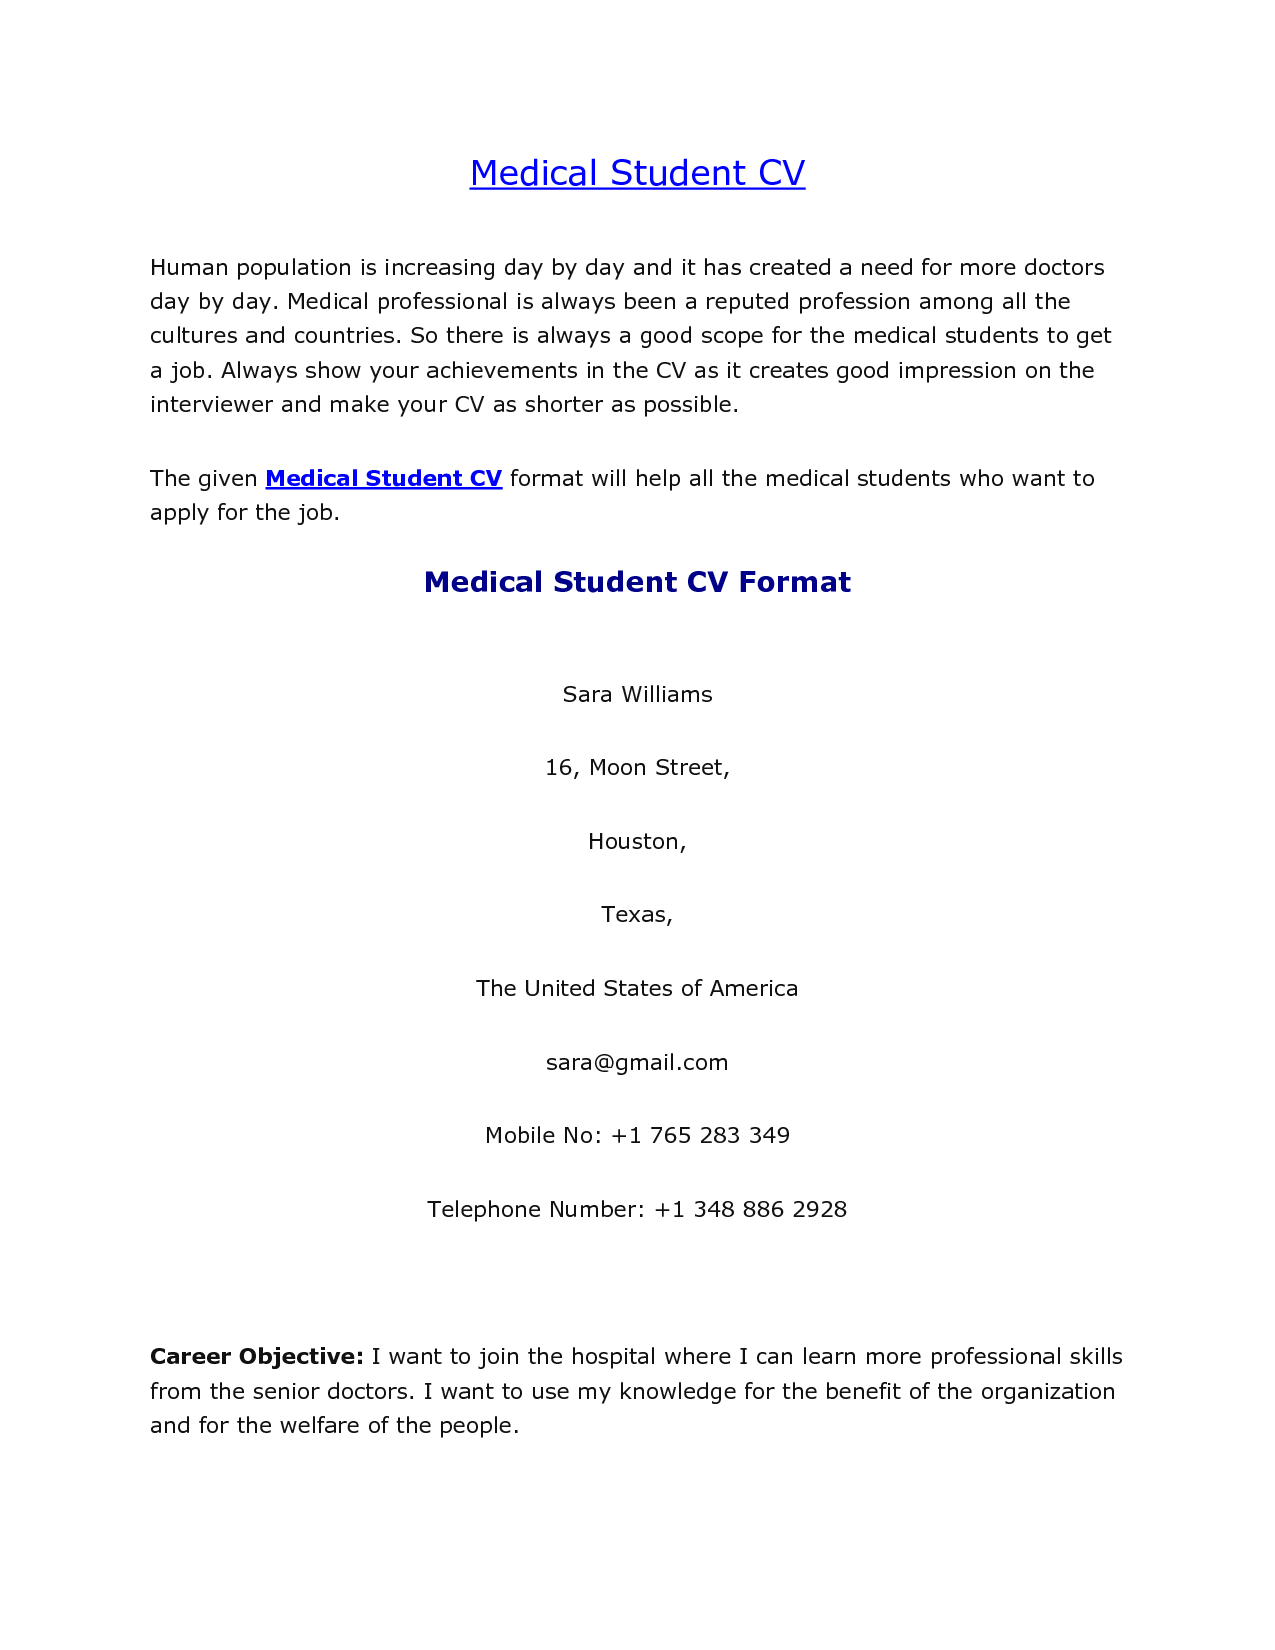 Sample Resume Template Medical Student Cv Sample  Resume Template  Pinterest  Medical